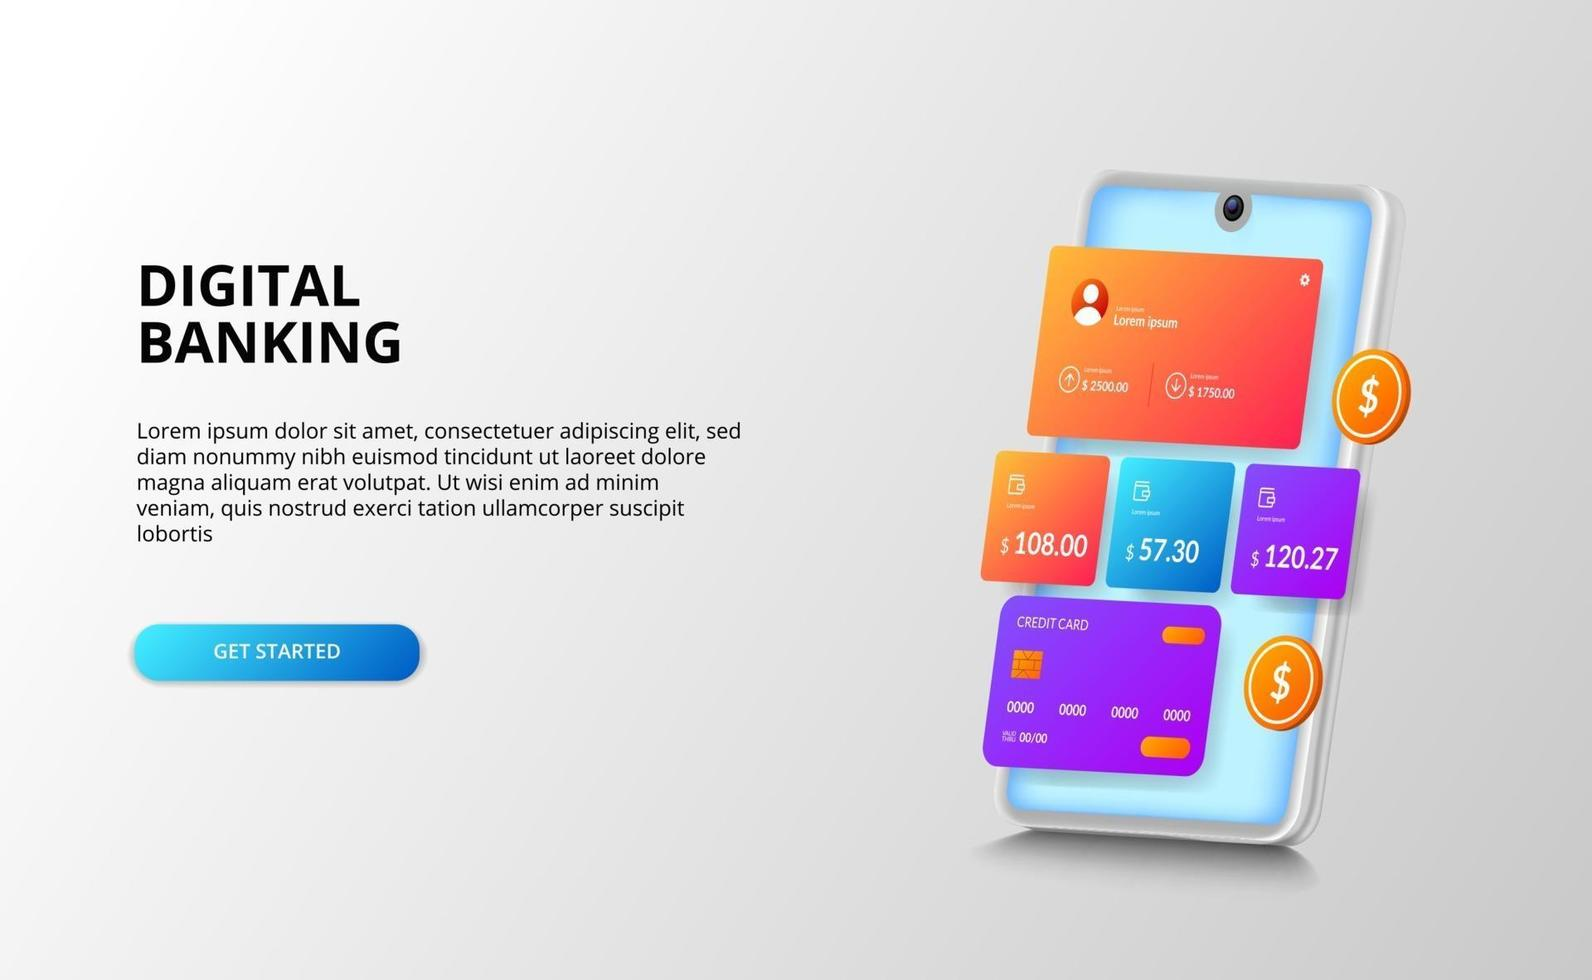 banking finance dashboard ui design concept for payment, bank, financial with credit card, golden coin, 3D perspective smartphone vector